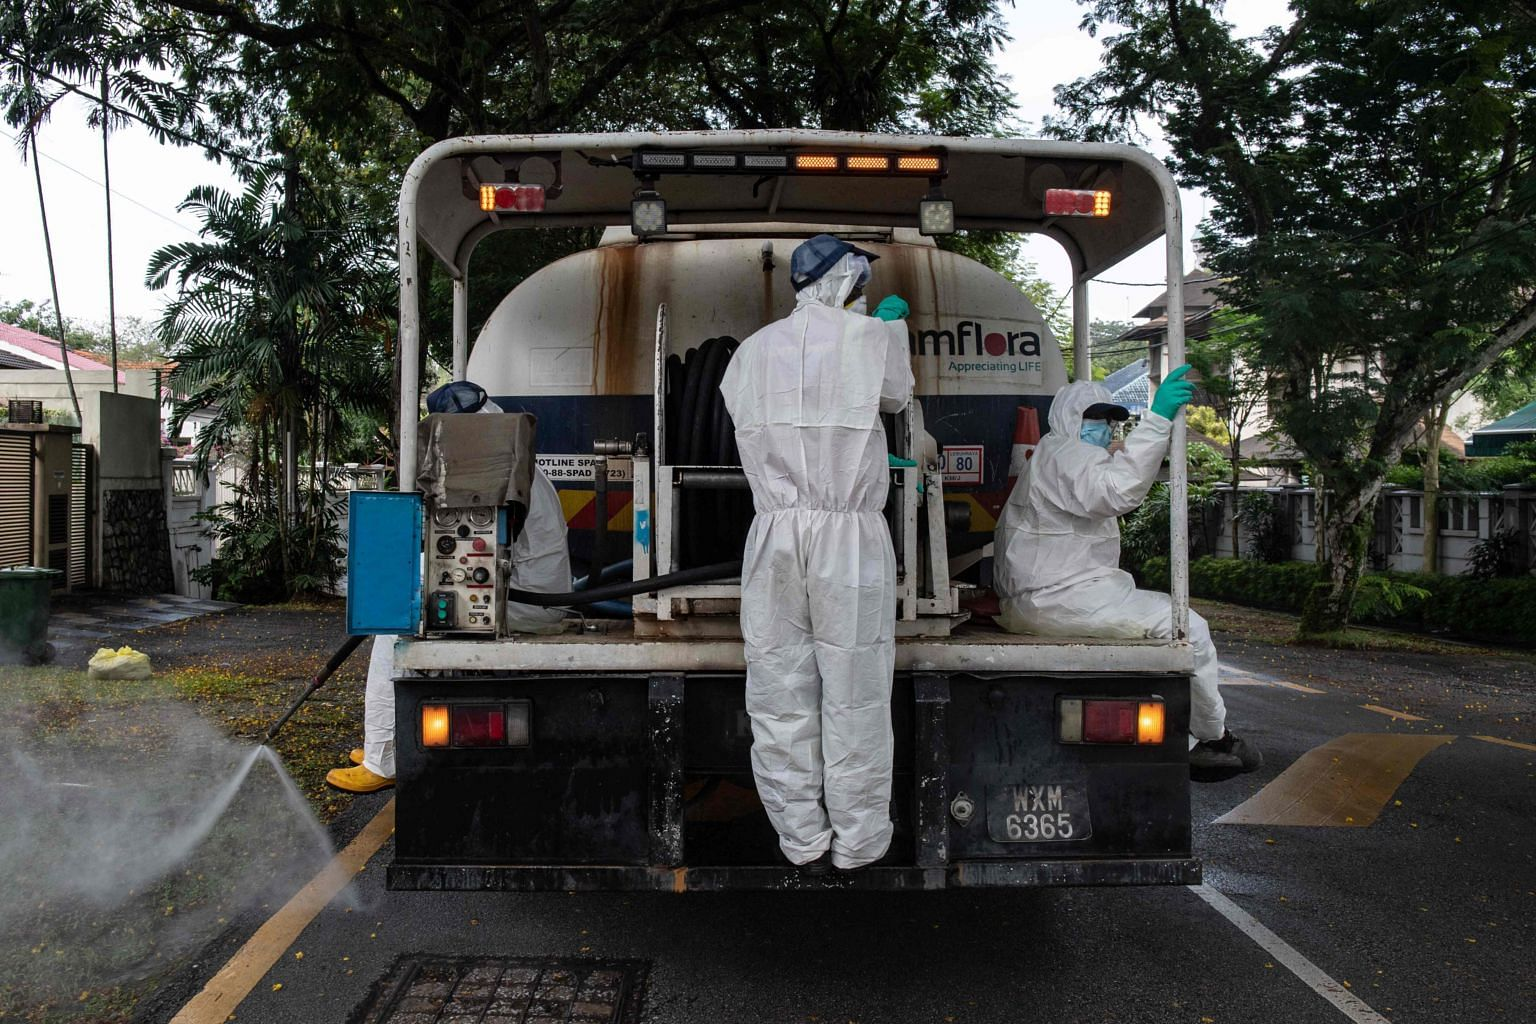 Malaysia Starts Nationwide Disinfection Efforts To Prevent Coronavirus Spread Se Asia News Top Stories The Straits Times